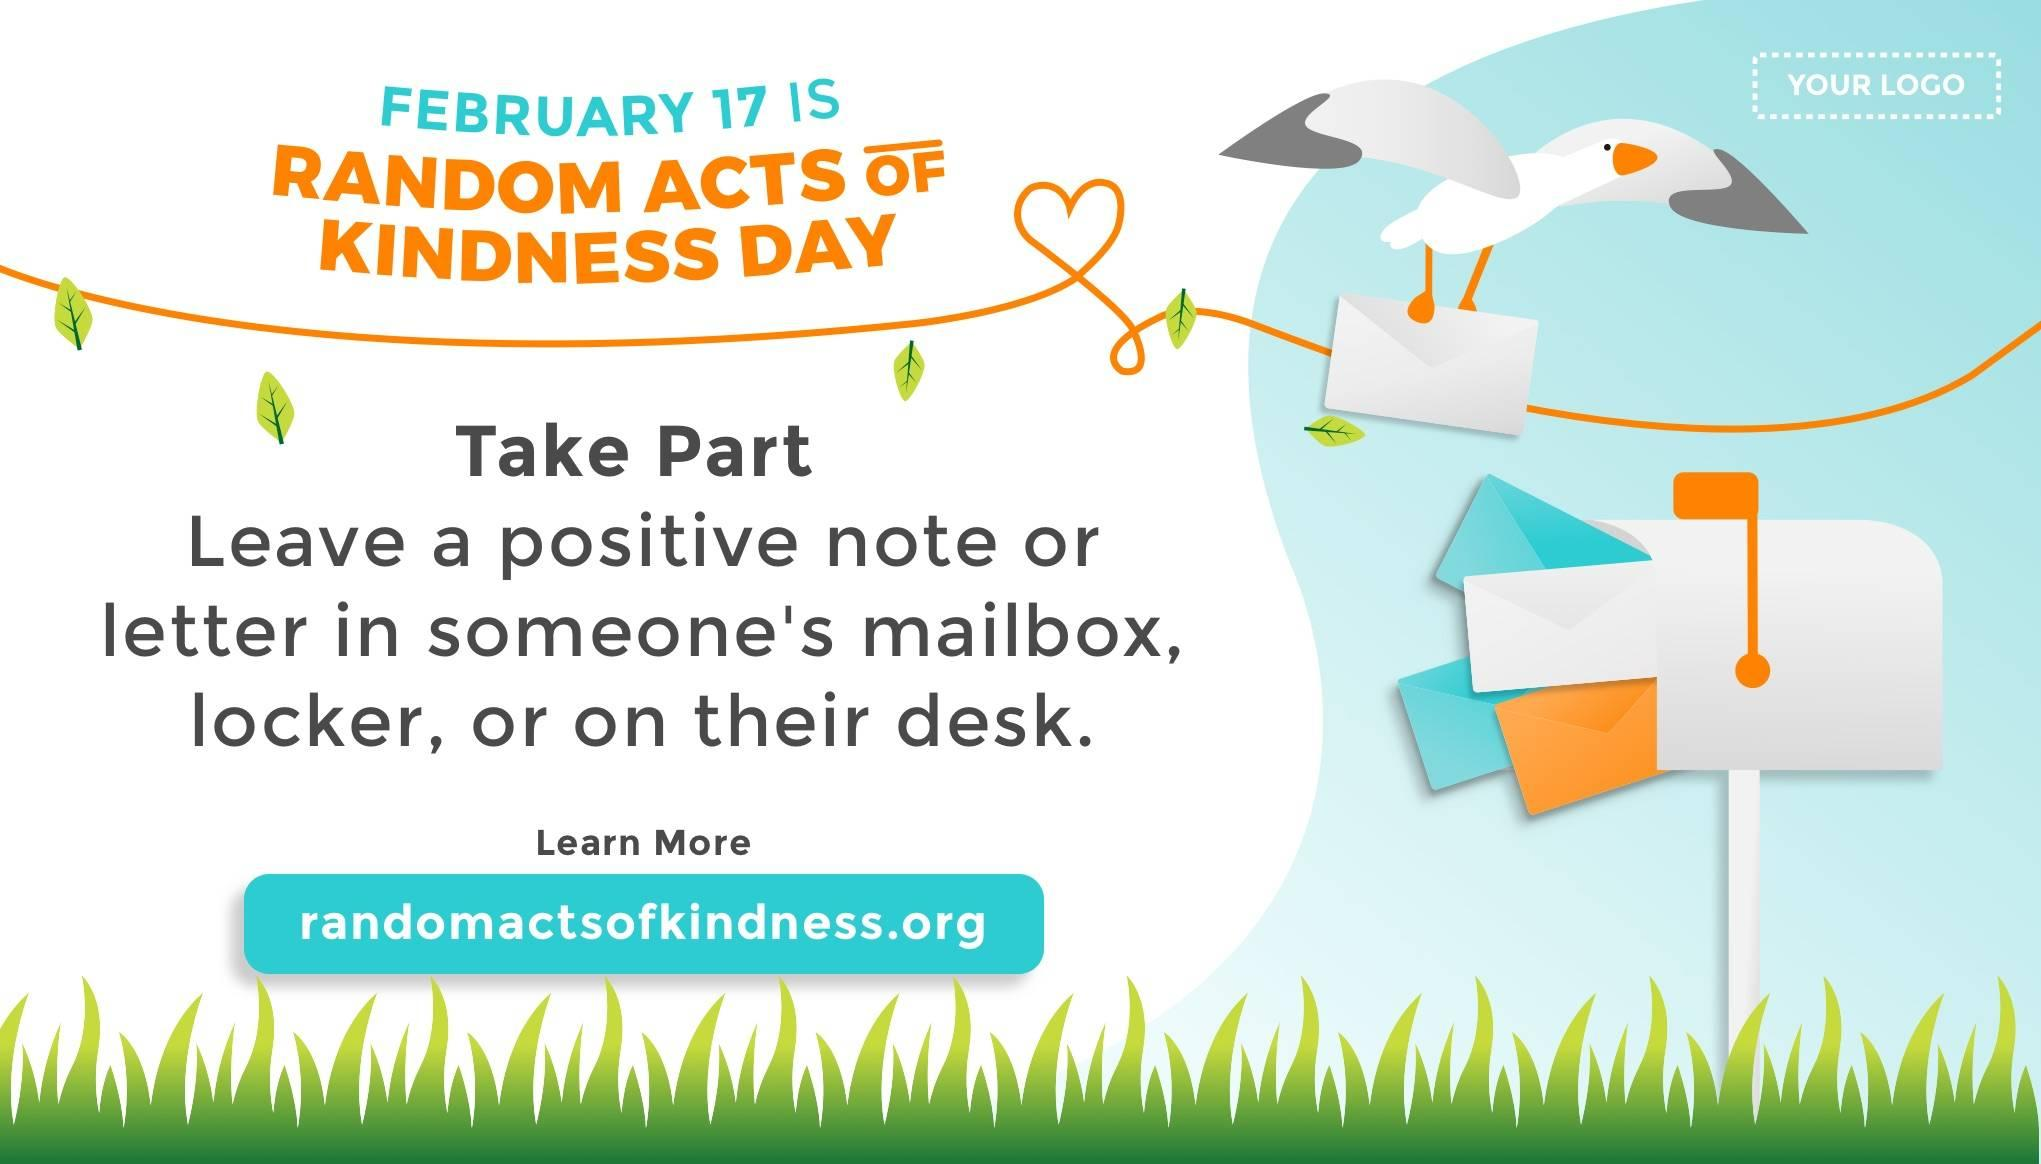 Random Acts of Kindness Day Digital Signage Template